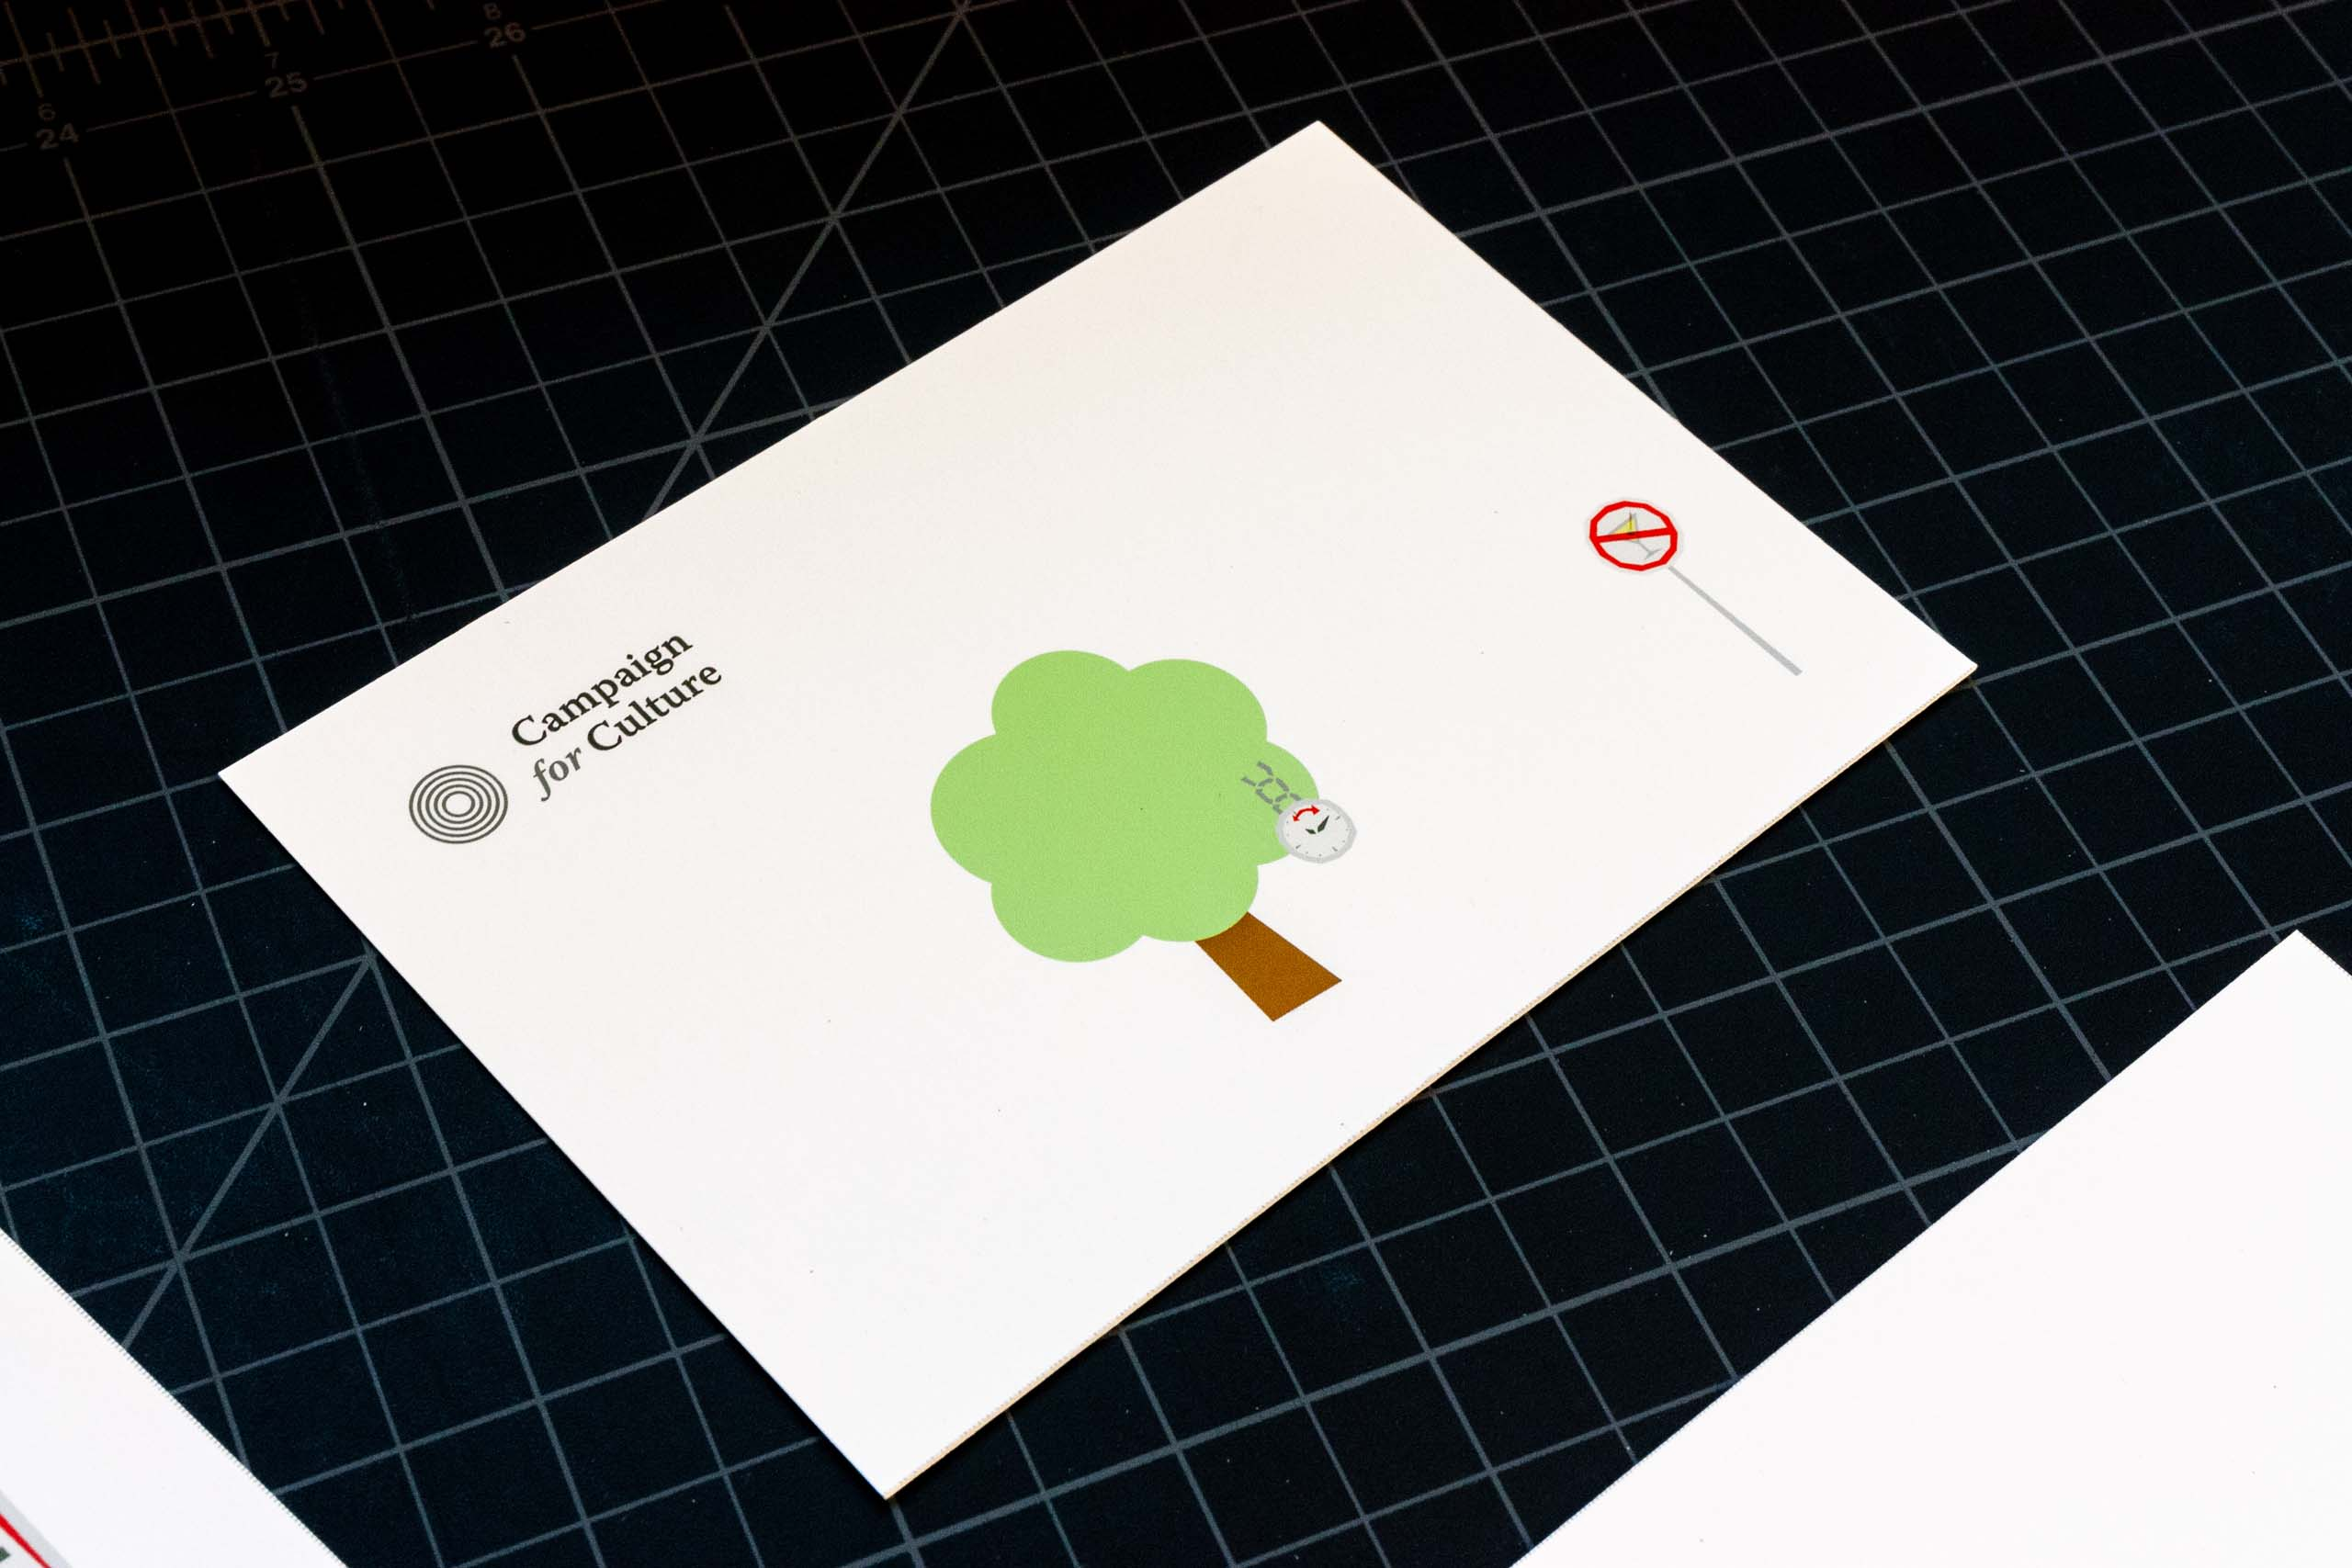 Campaign for Culture postcard with a tree and clock illustration — by Yagnyuk.